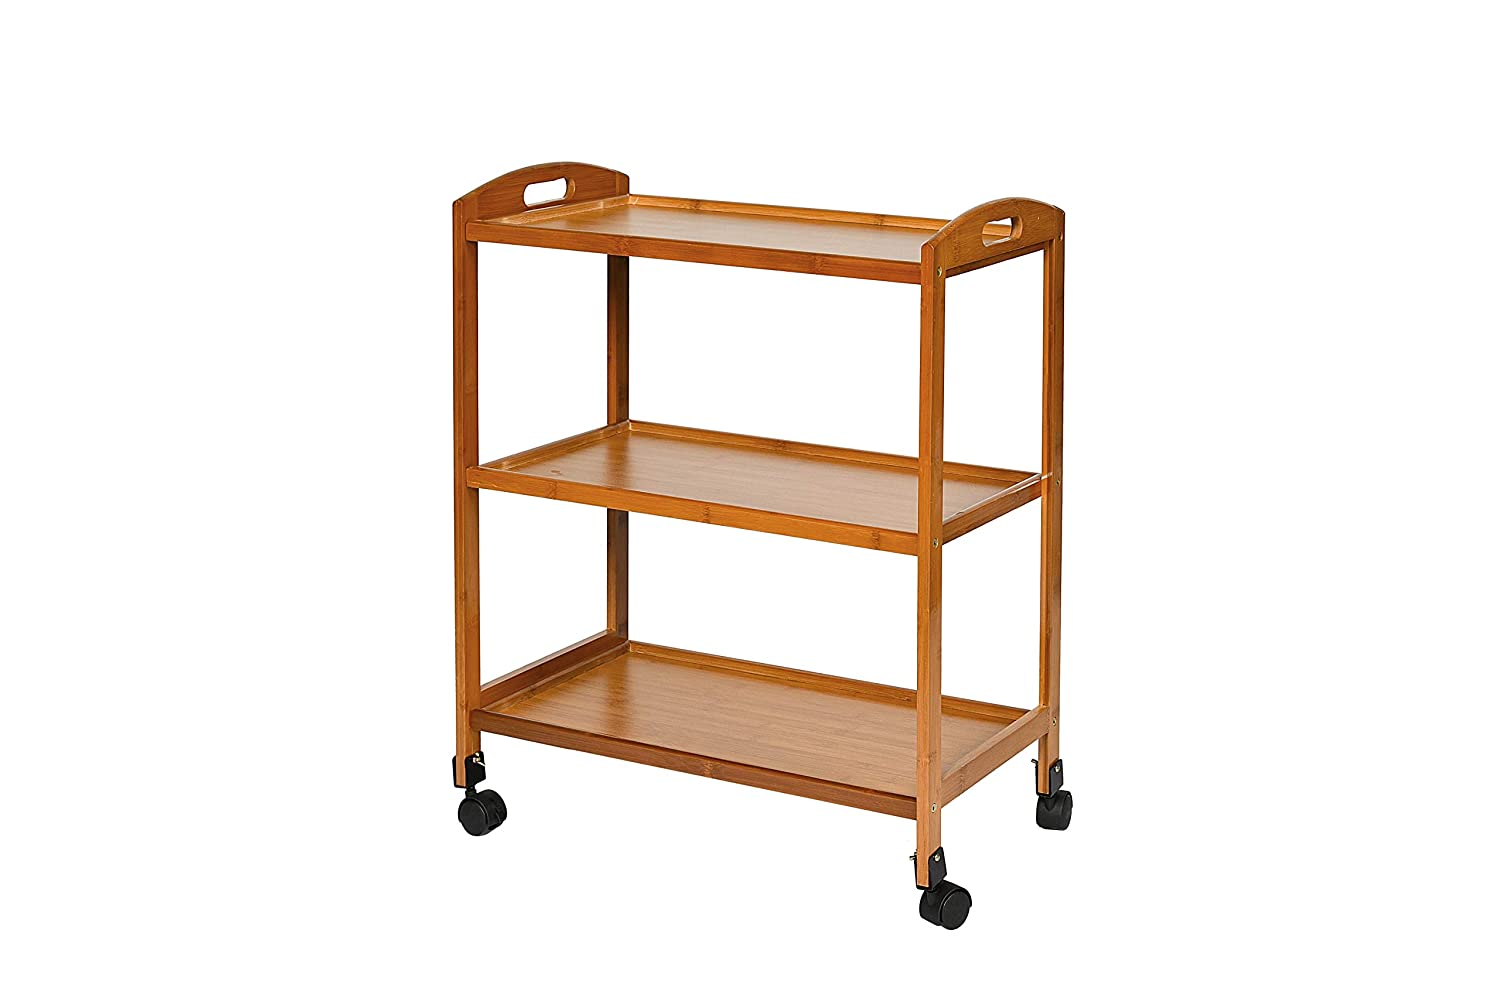 Kitchen Trolley Shelves By Spencer And Slate - Small Rolling Storage Cart  With Wheels   Use As A Shelf Or Stand That Is Easily When Not In Use  